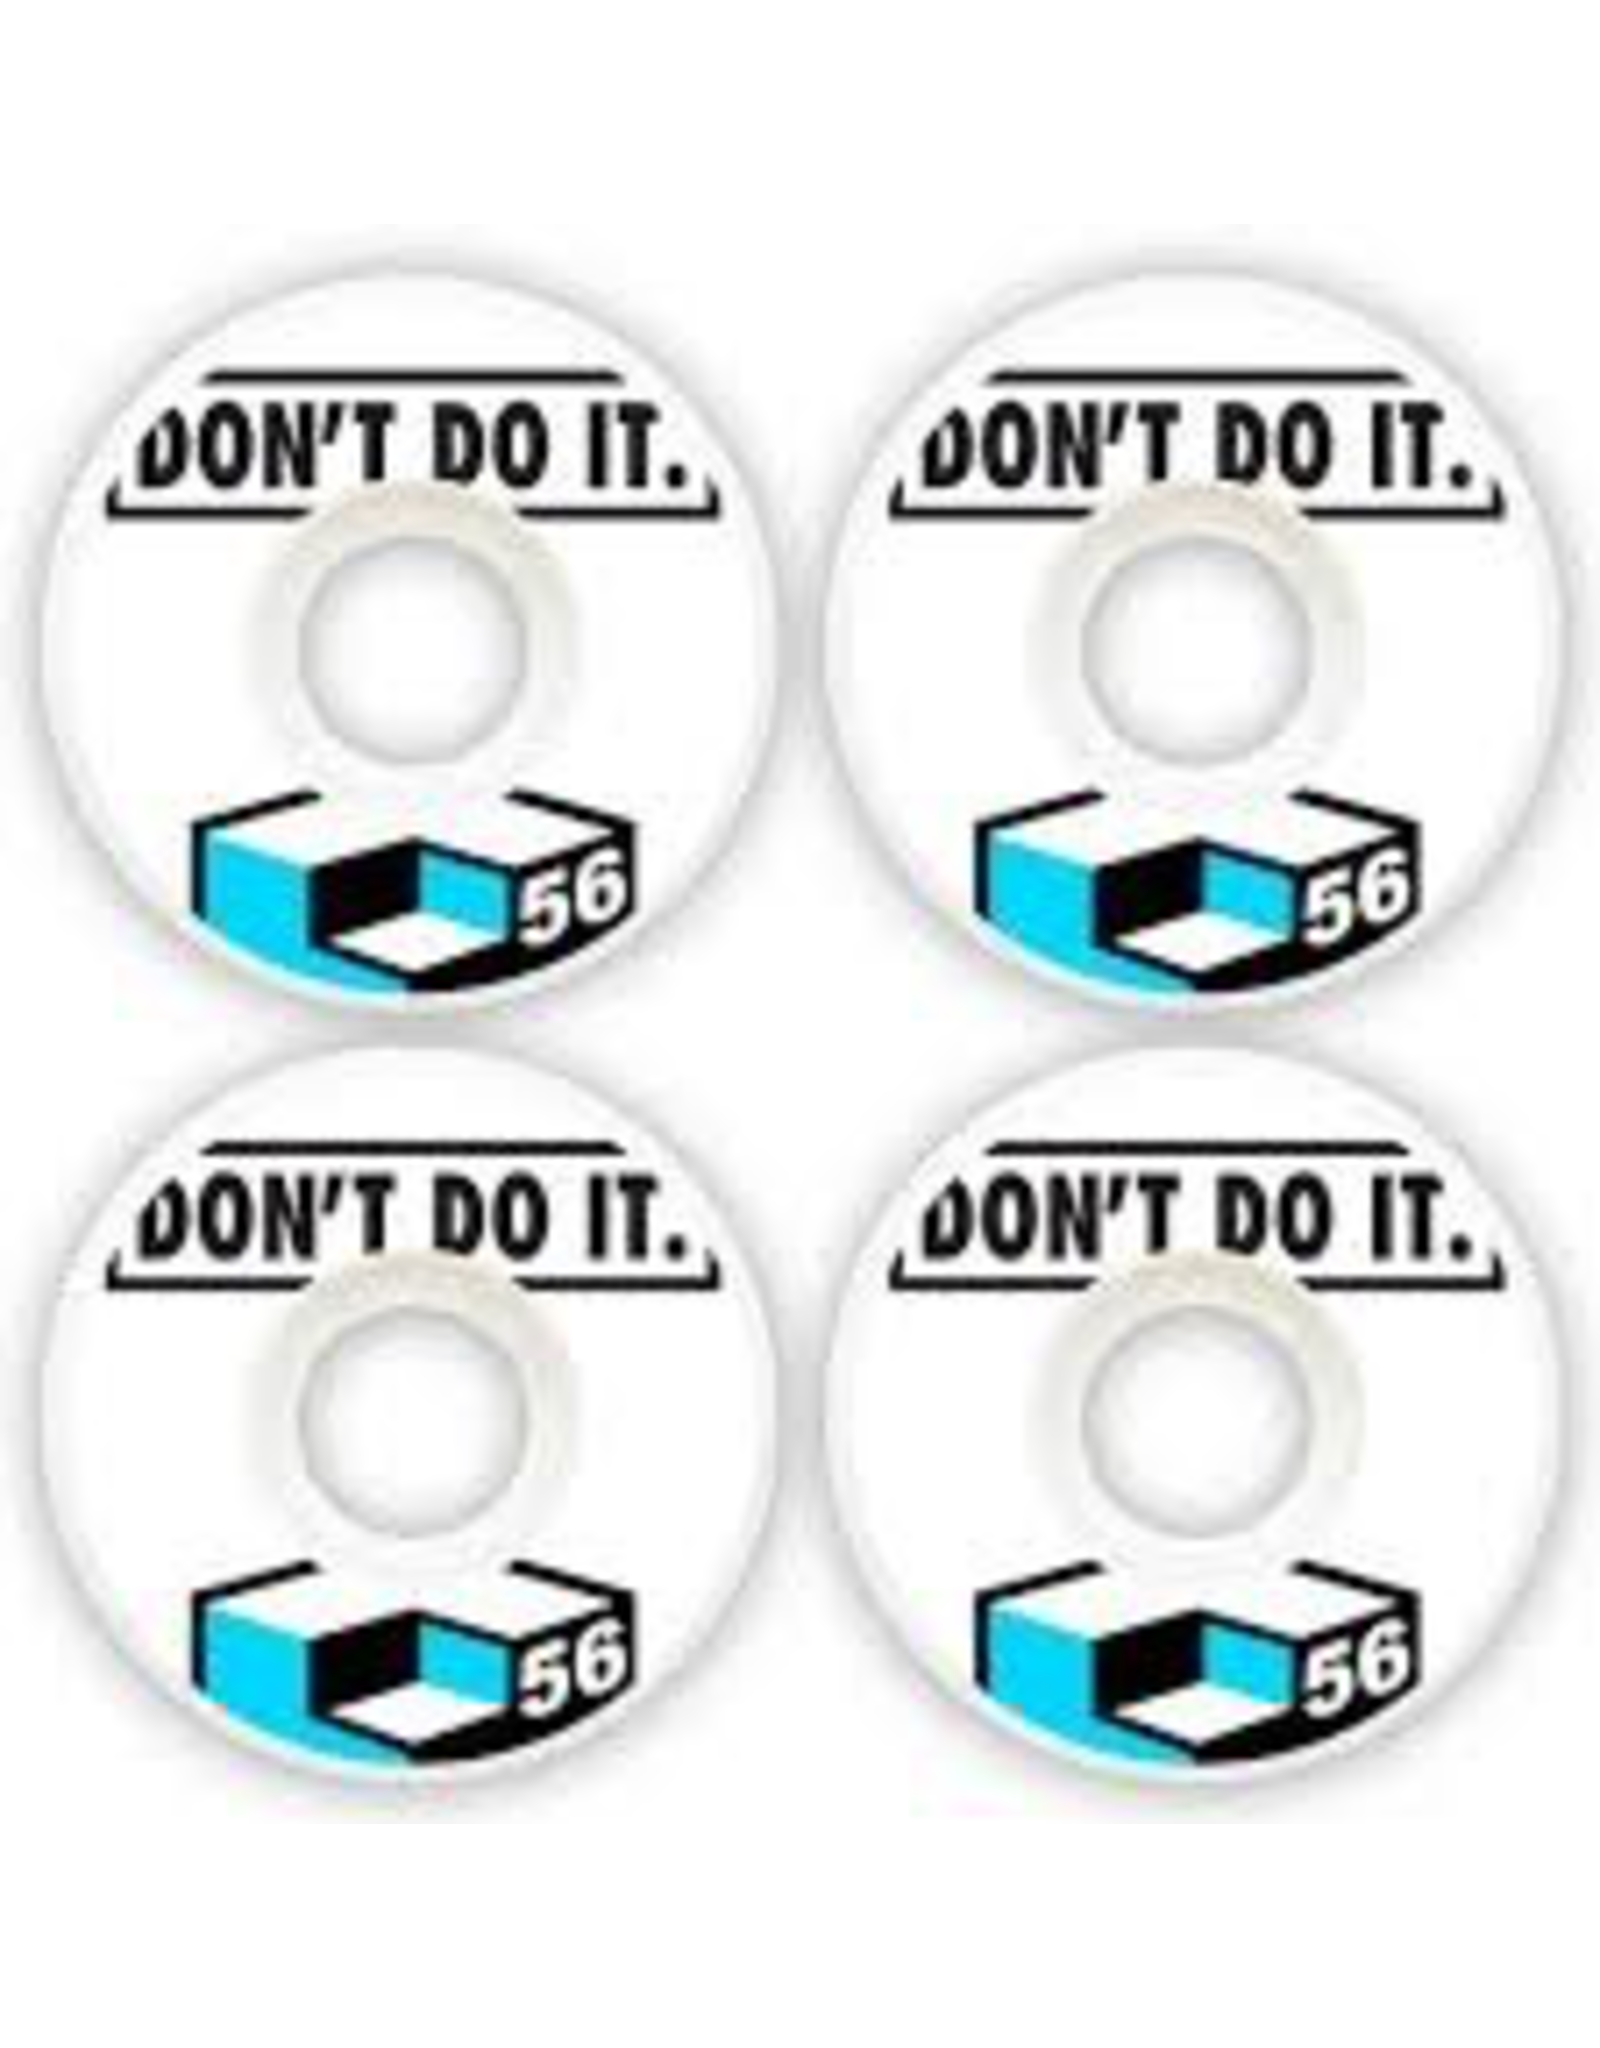 CONSOLIDATED CONSOLIDATED DONT DO IT WHEELS - 56MM 99A